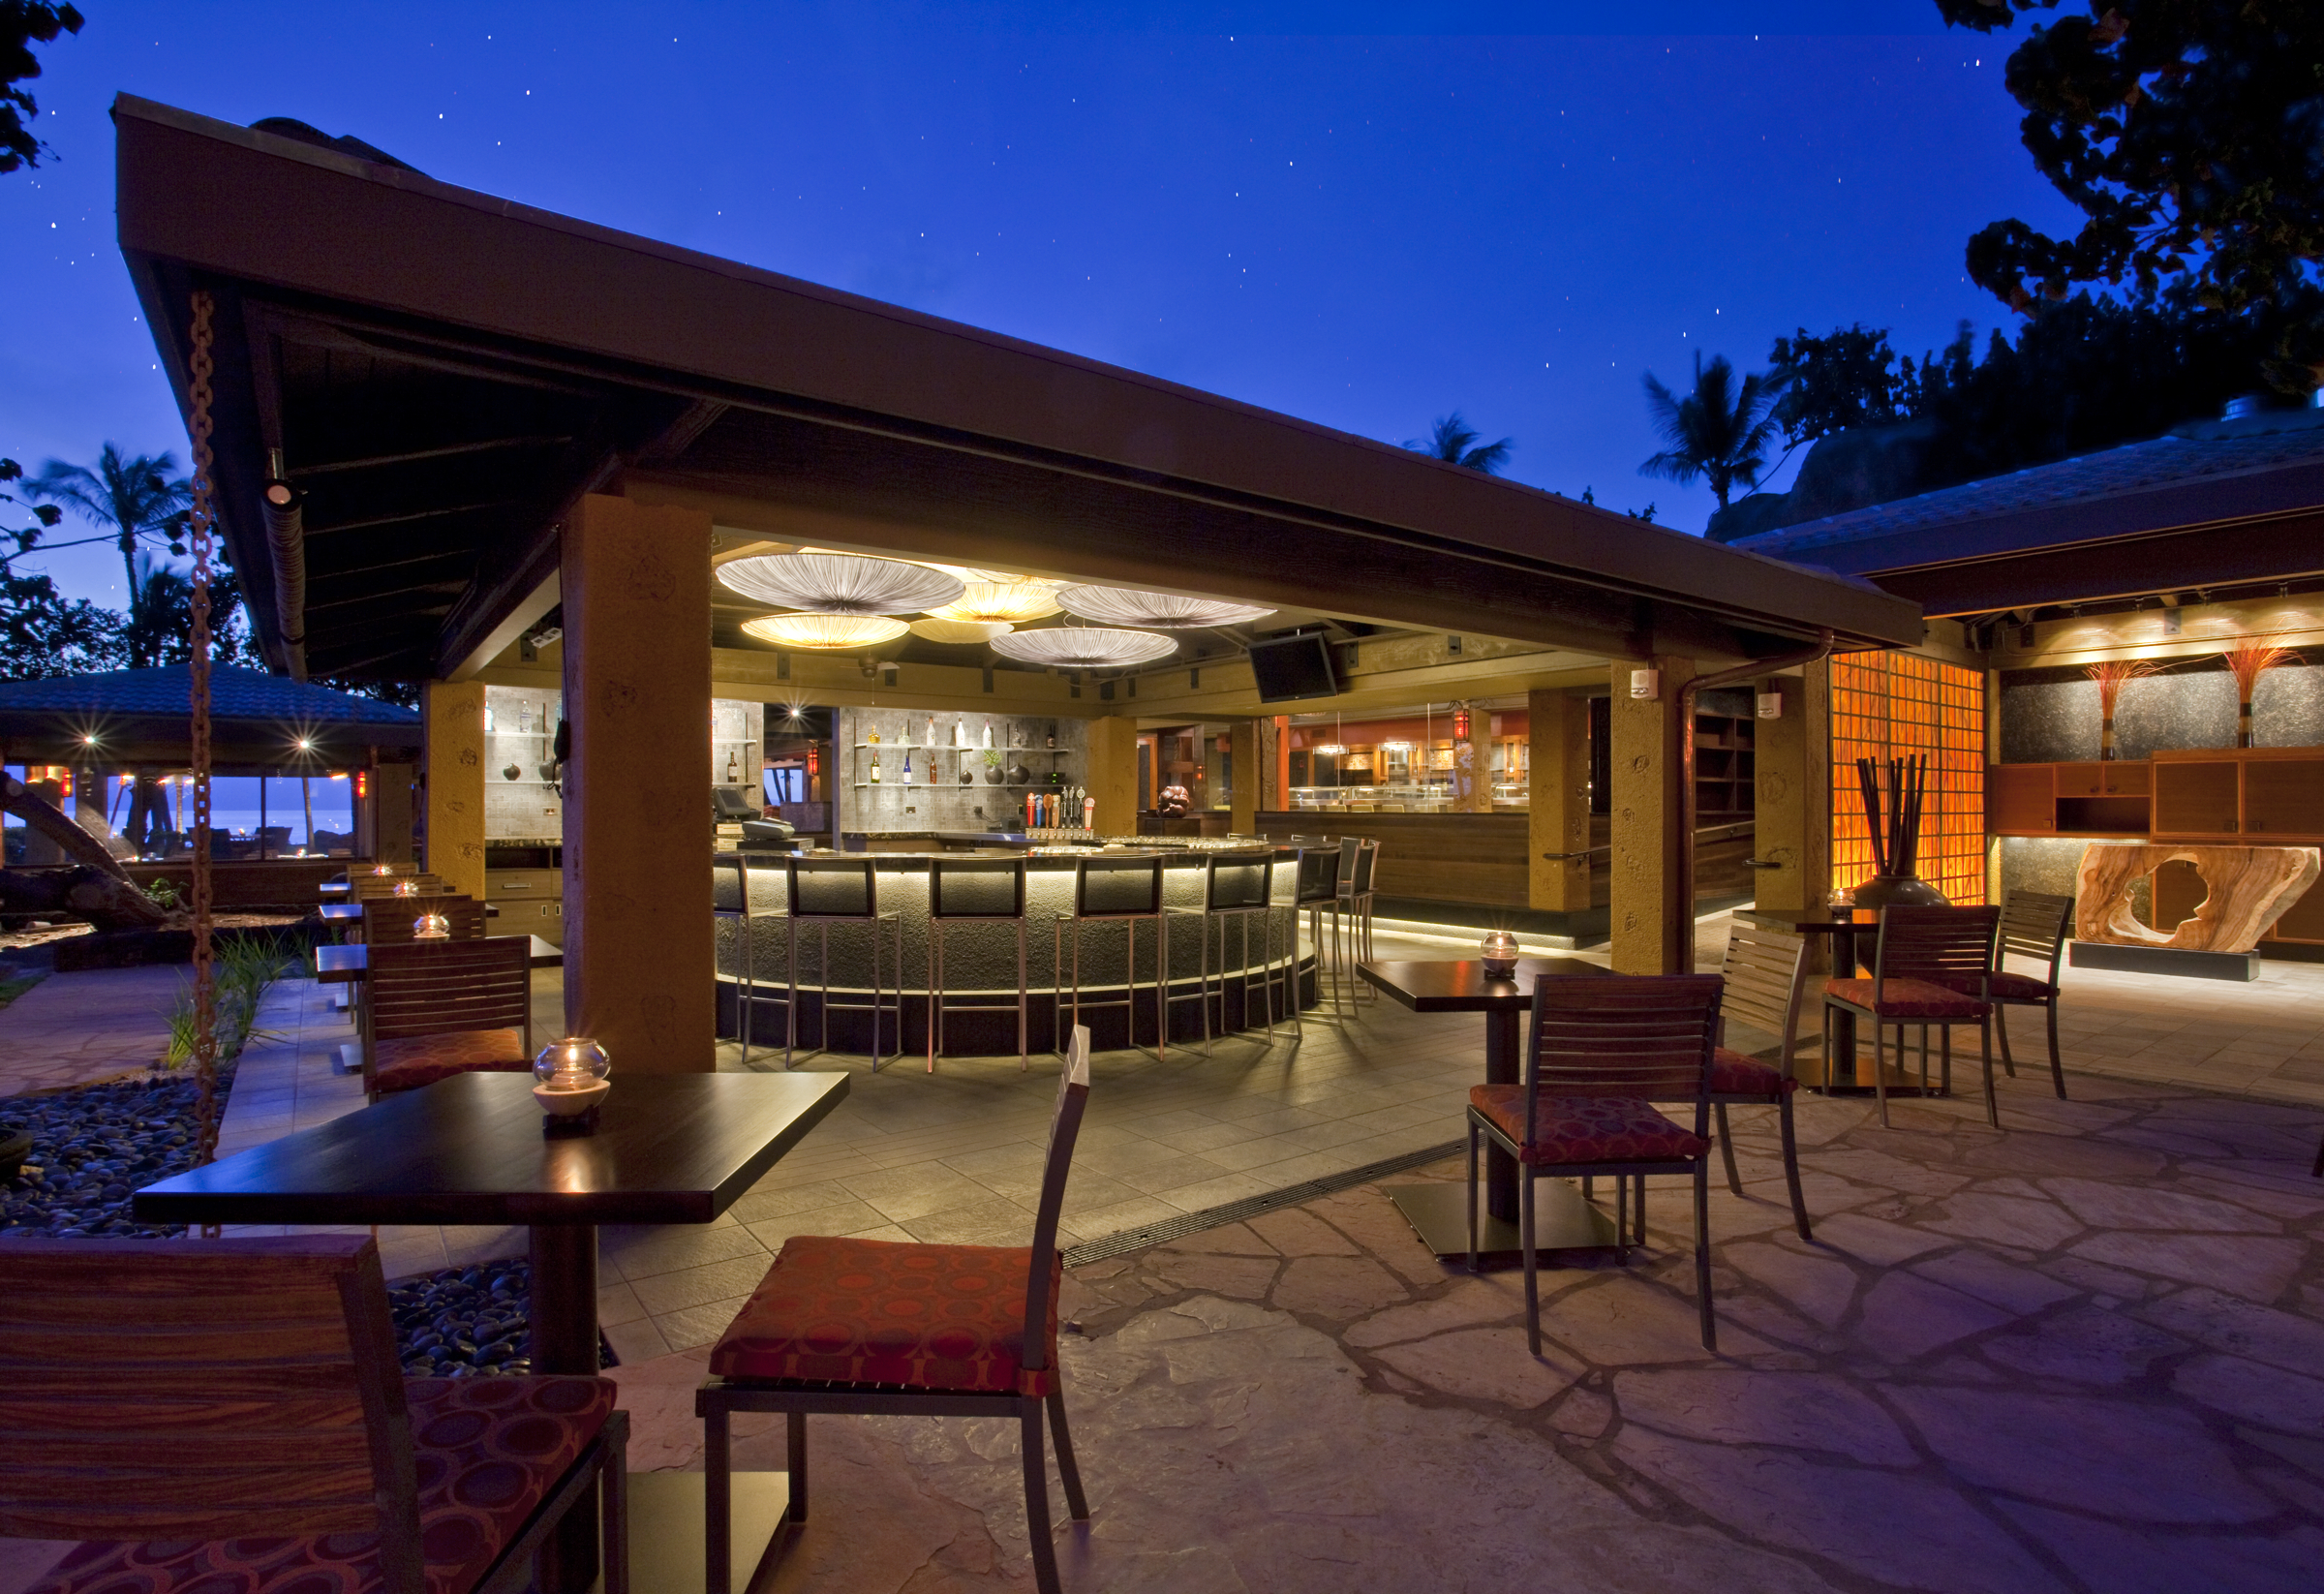 Japengo Restaurant at Hyatt Regency Maui Resort and Spa Reopens